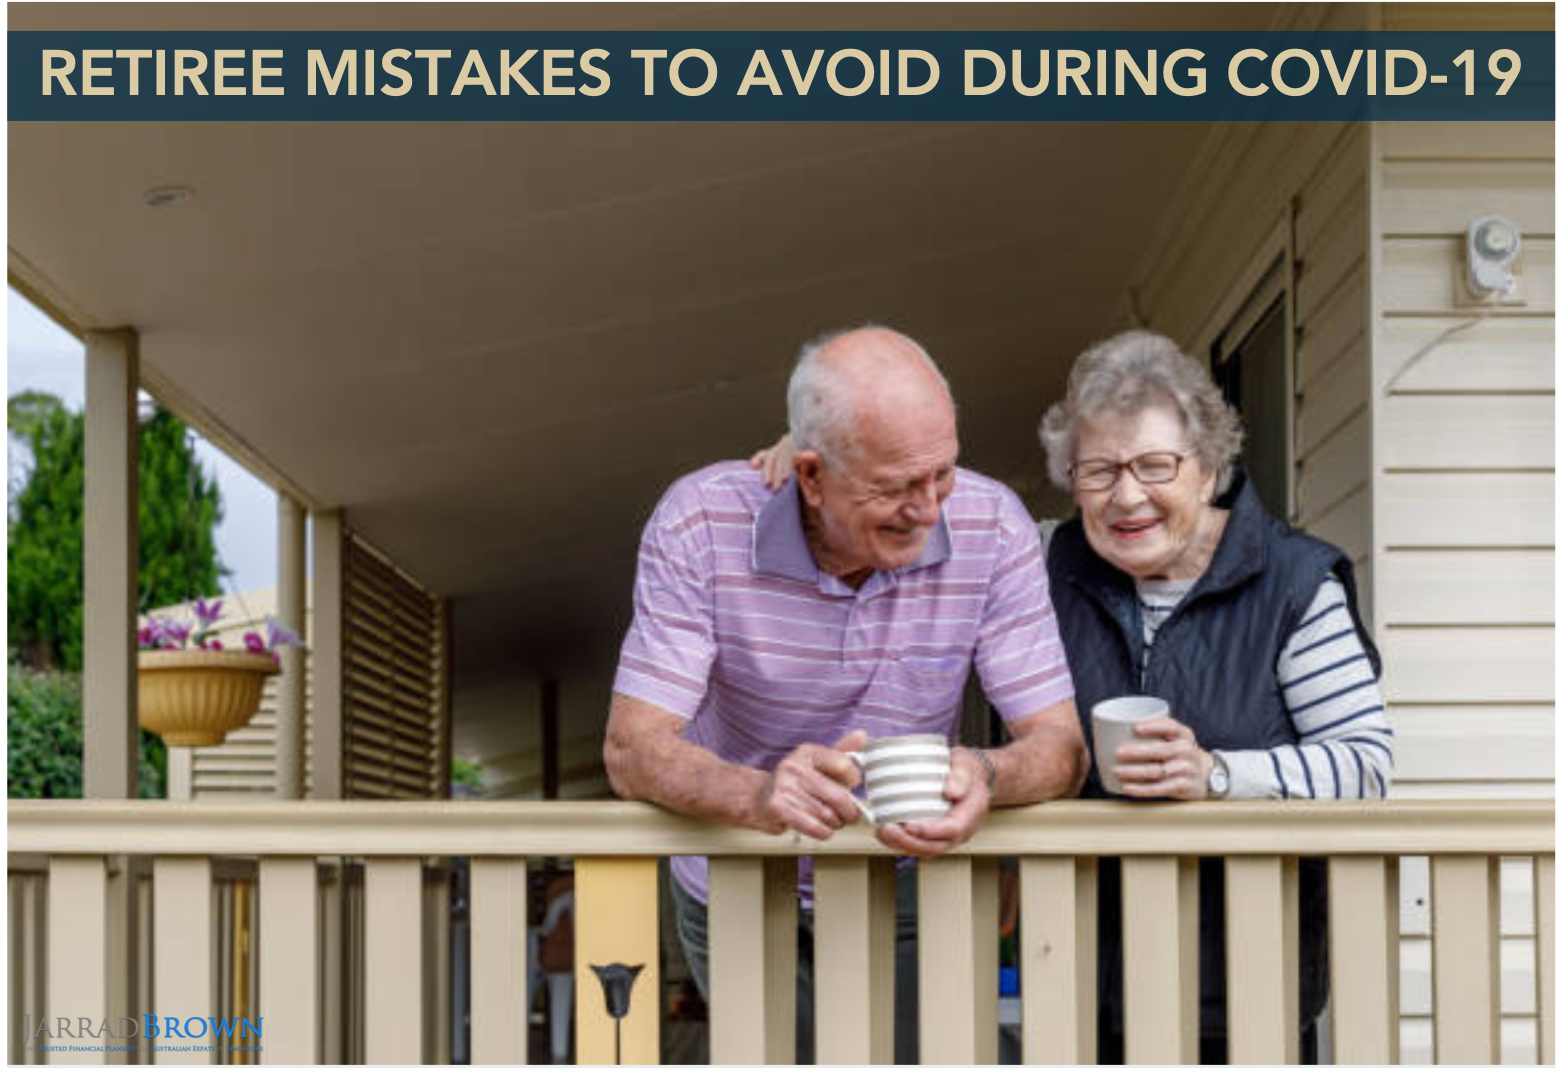 Retiree Financial Mistakes During COVID-19 - JARRAD BROWN - Financial Planner for Australian Expats